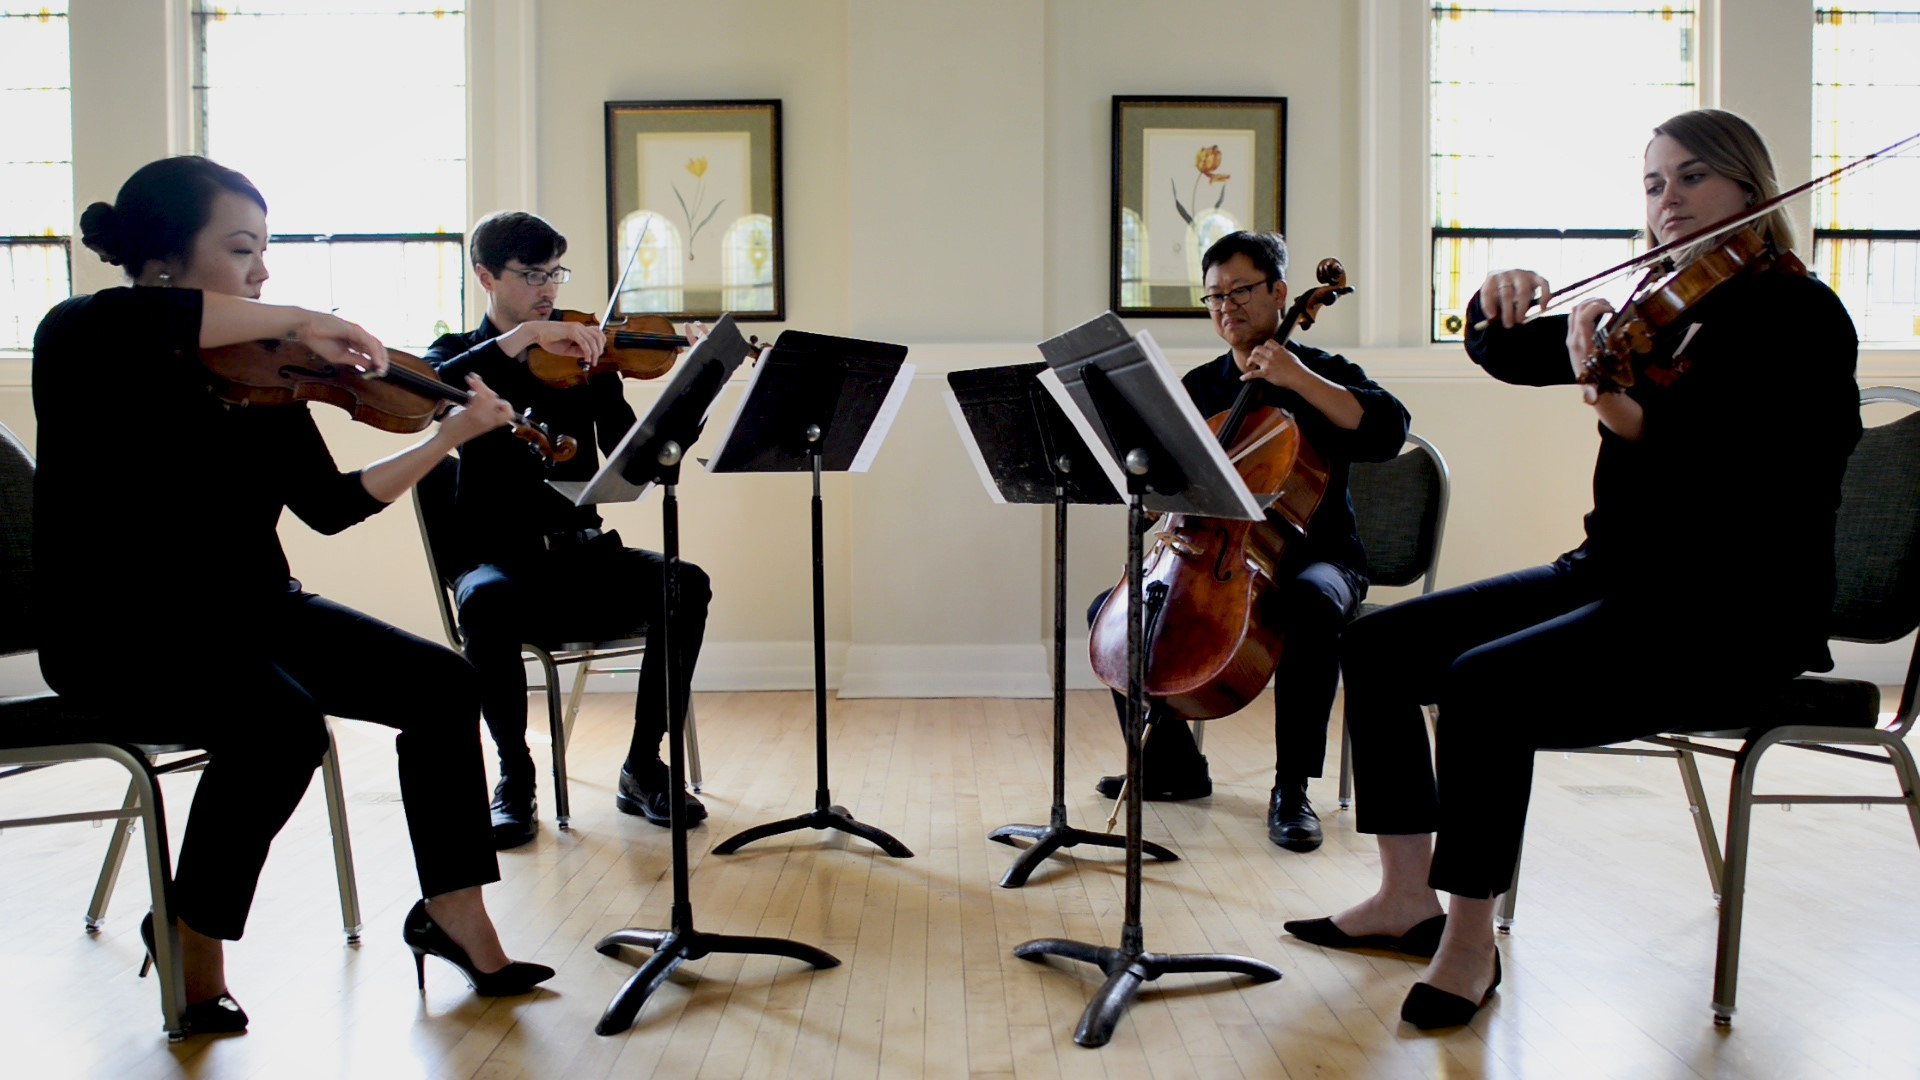 CANCELED: 3rd Tuesday Lunchtime Concert Series Presents: #nophilter with 3rd Law Dance